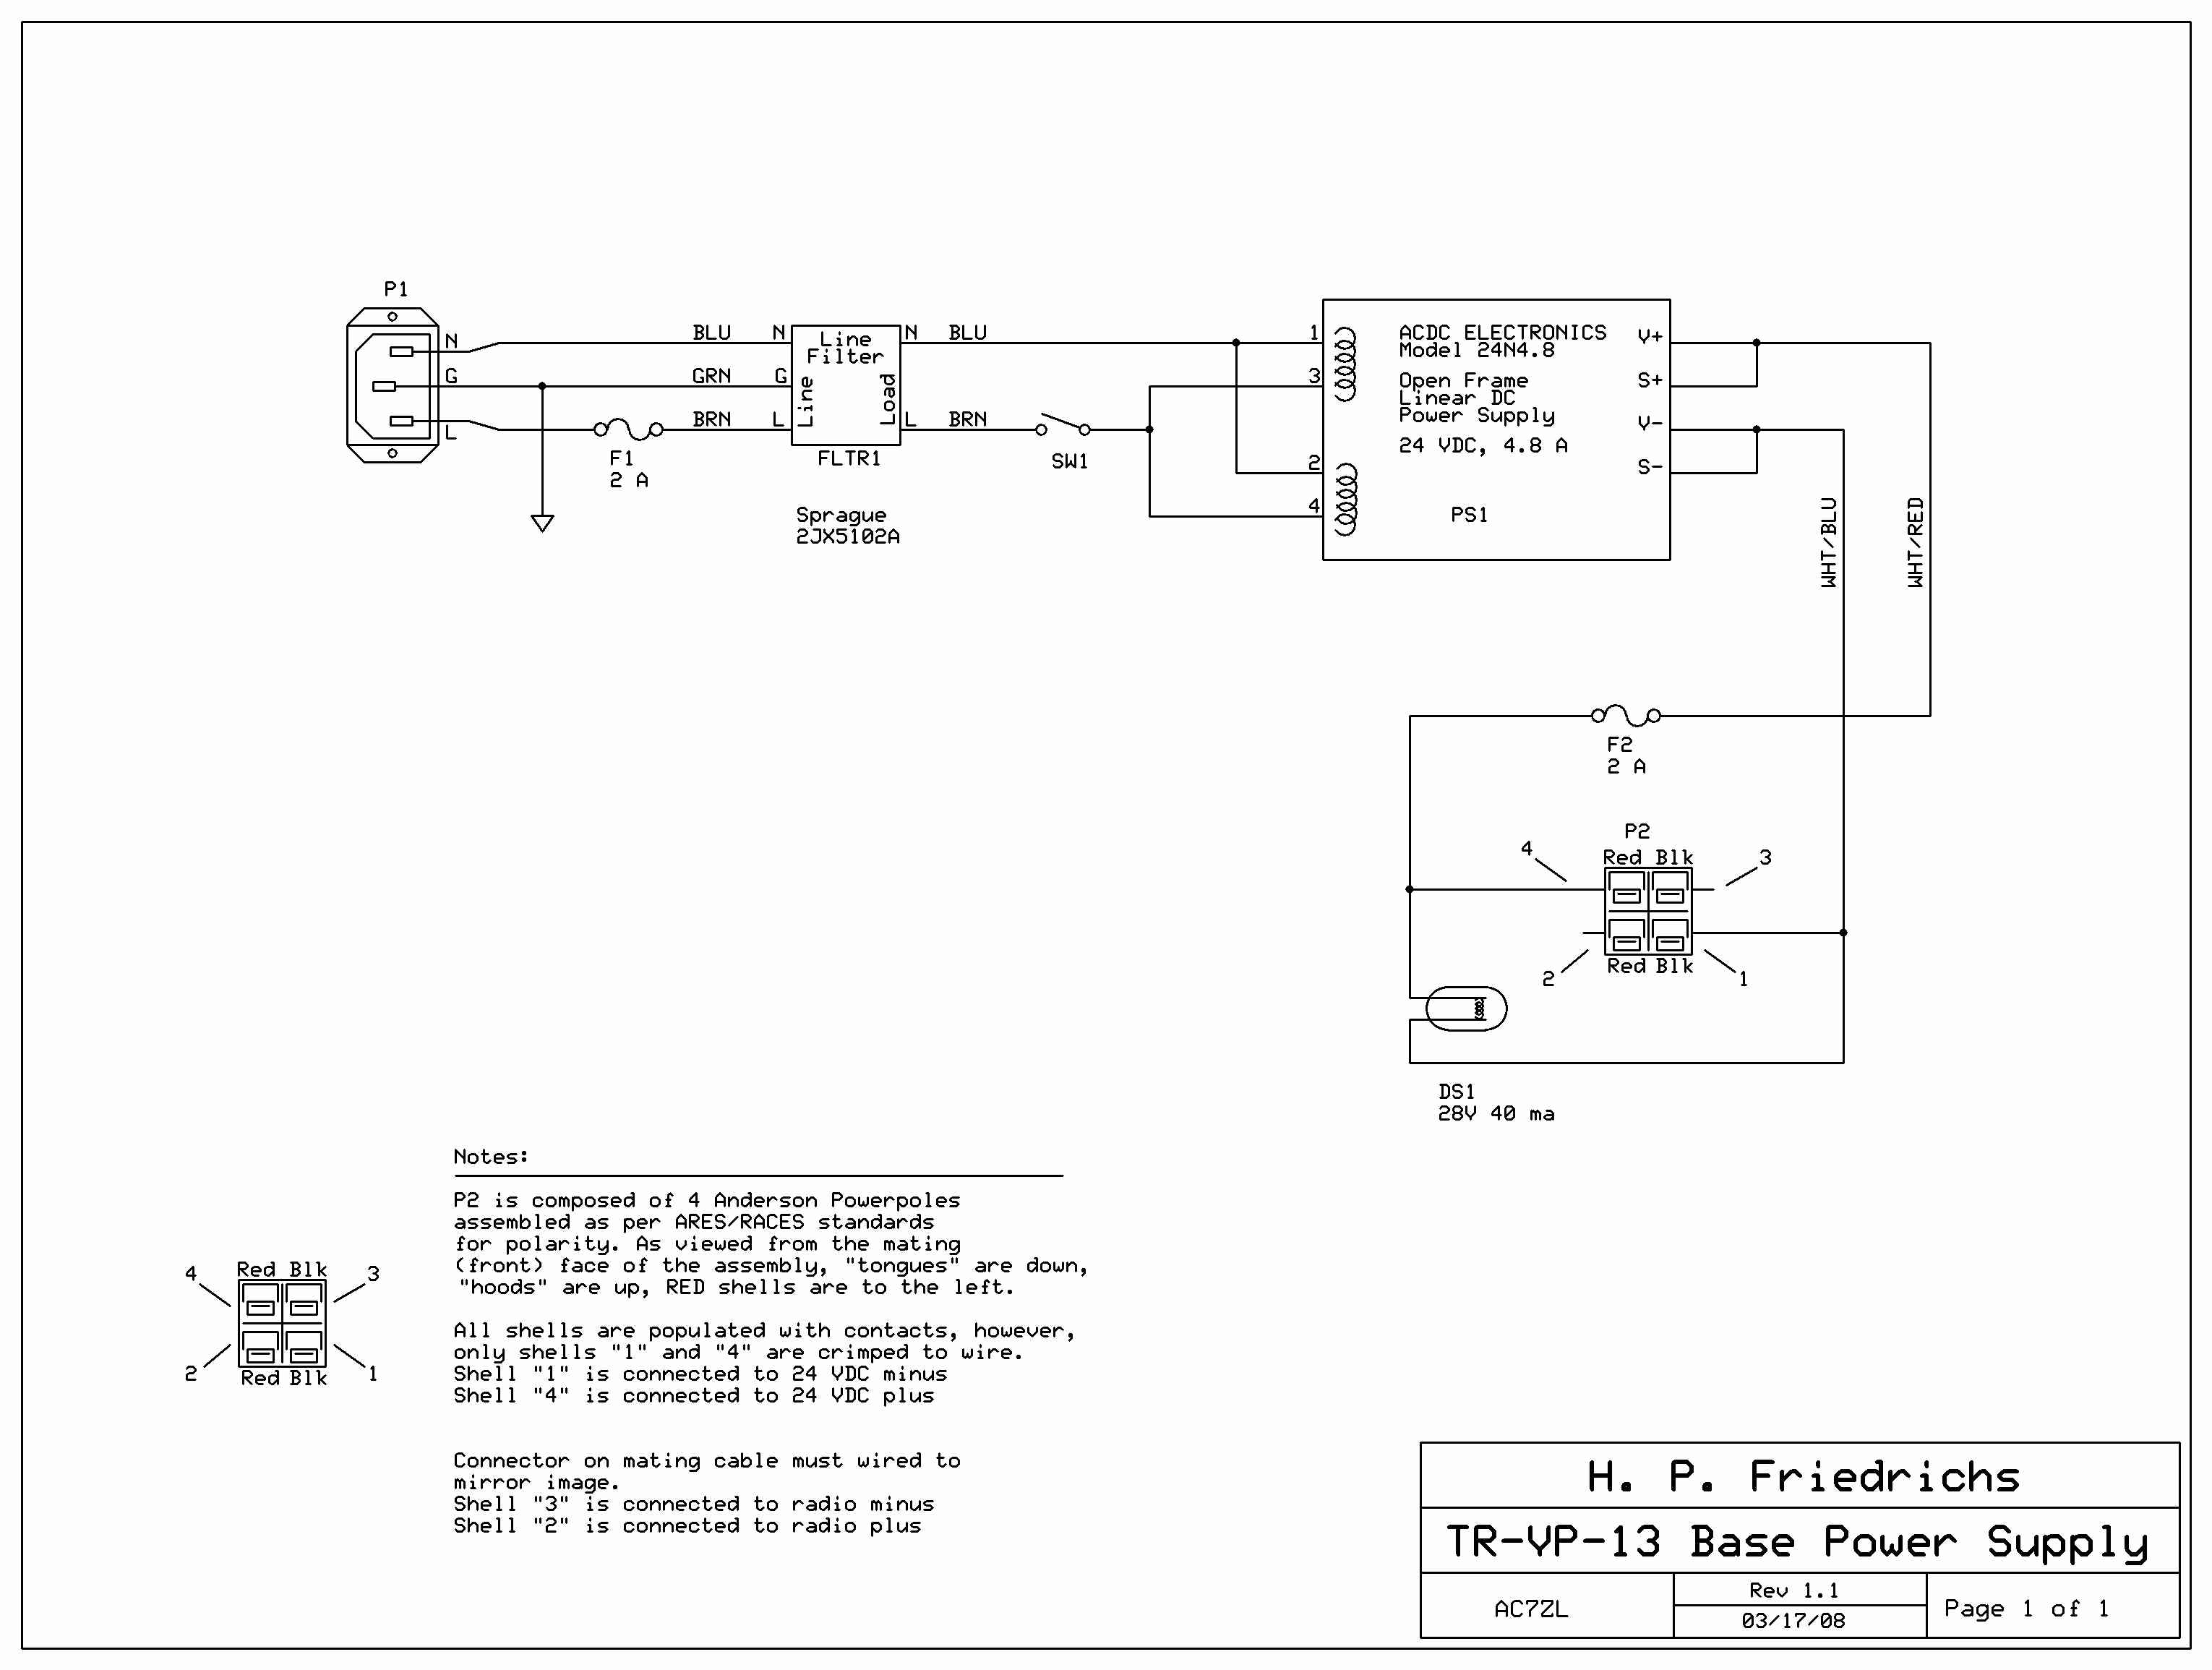 iec power cord wiring diagram 2004 ford f150 speaker plug get free image about